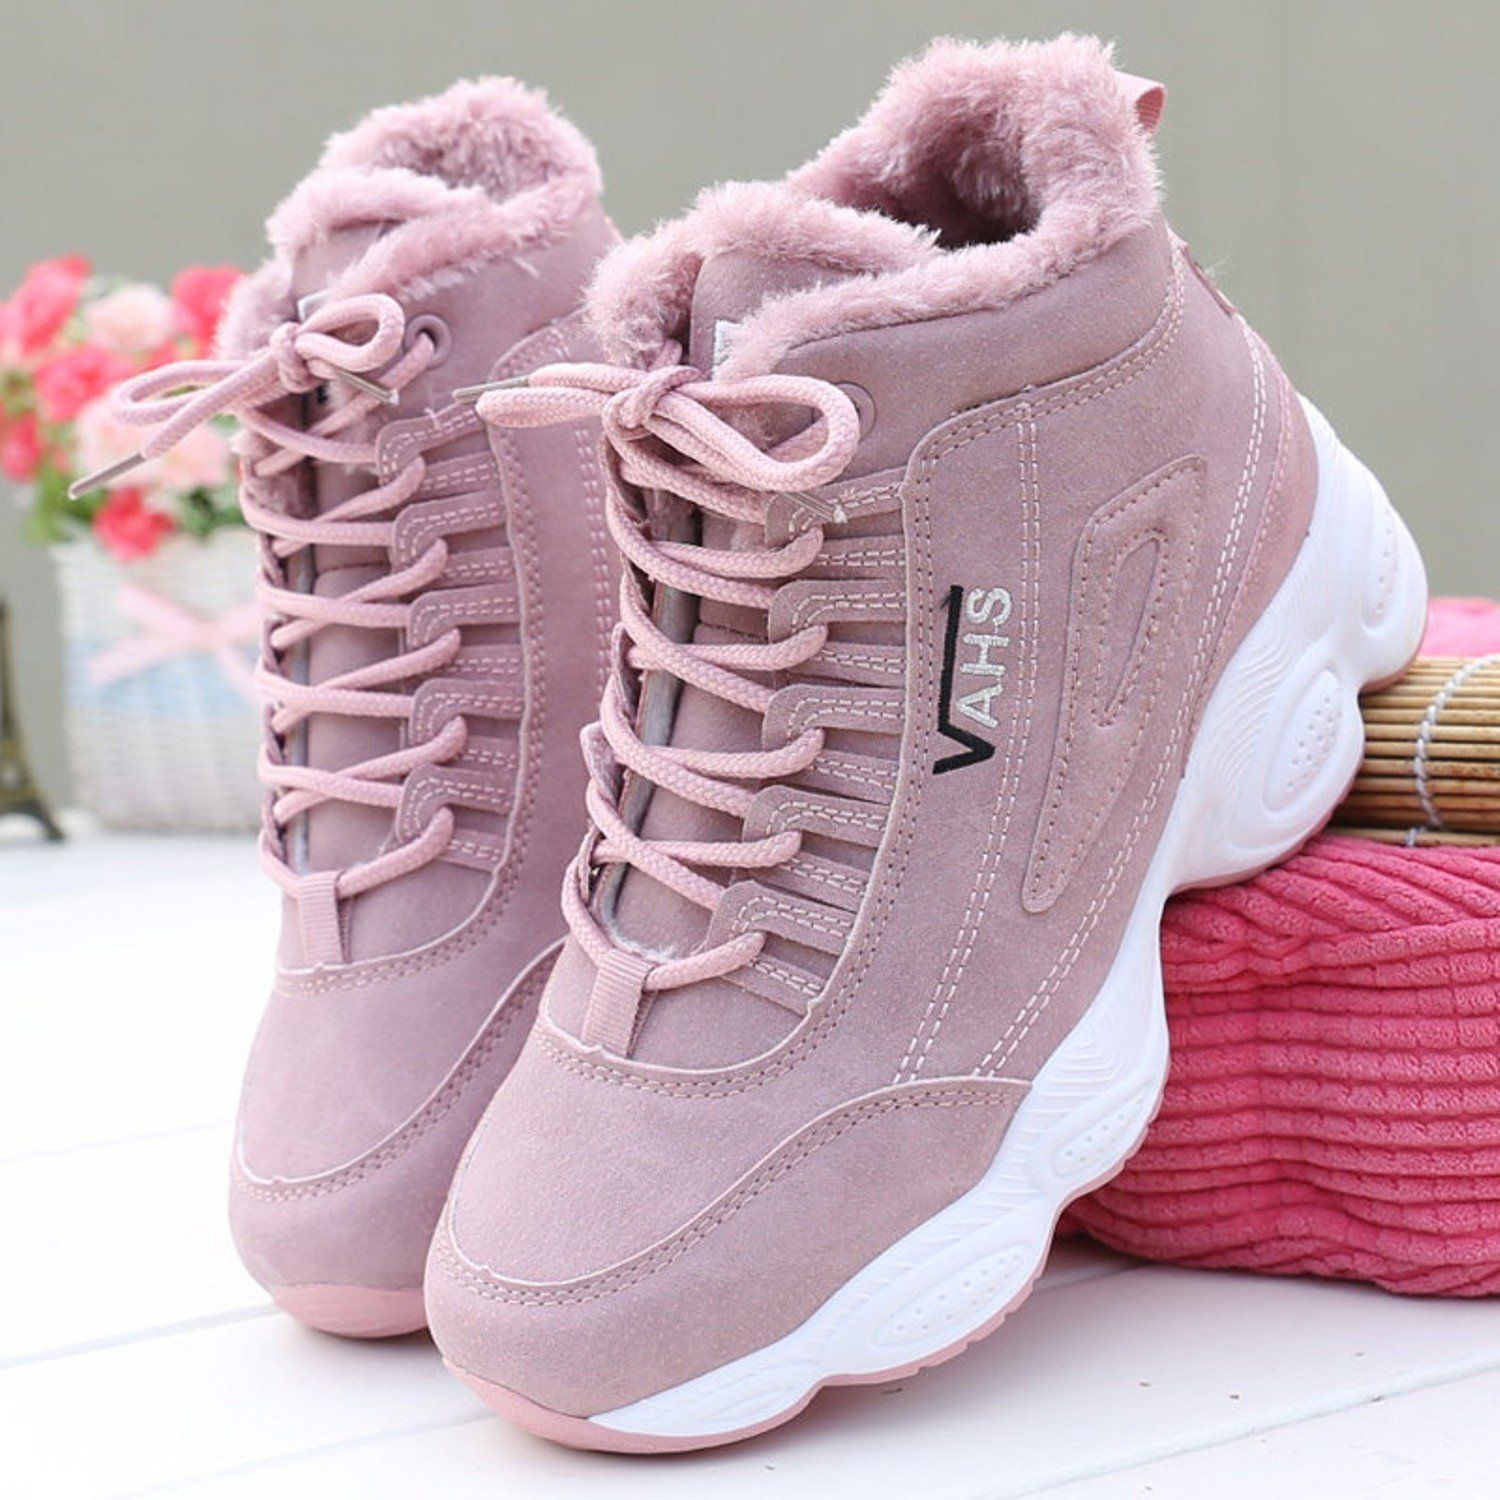 Shoes Warm Thick Plush Suede Snow Boots Female Etsystyle Etsy Style Casual Shoes Women Summer Boots Ankle Womens Wedge Sneakers